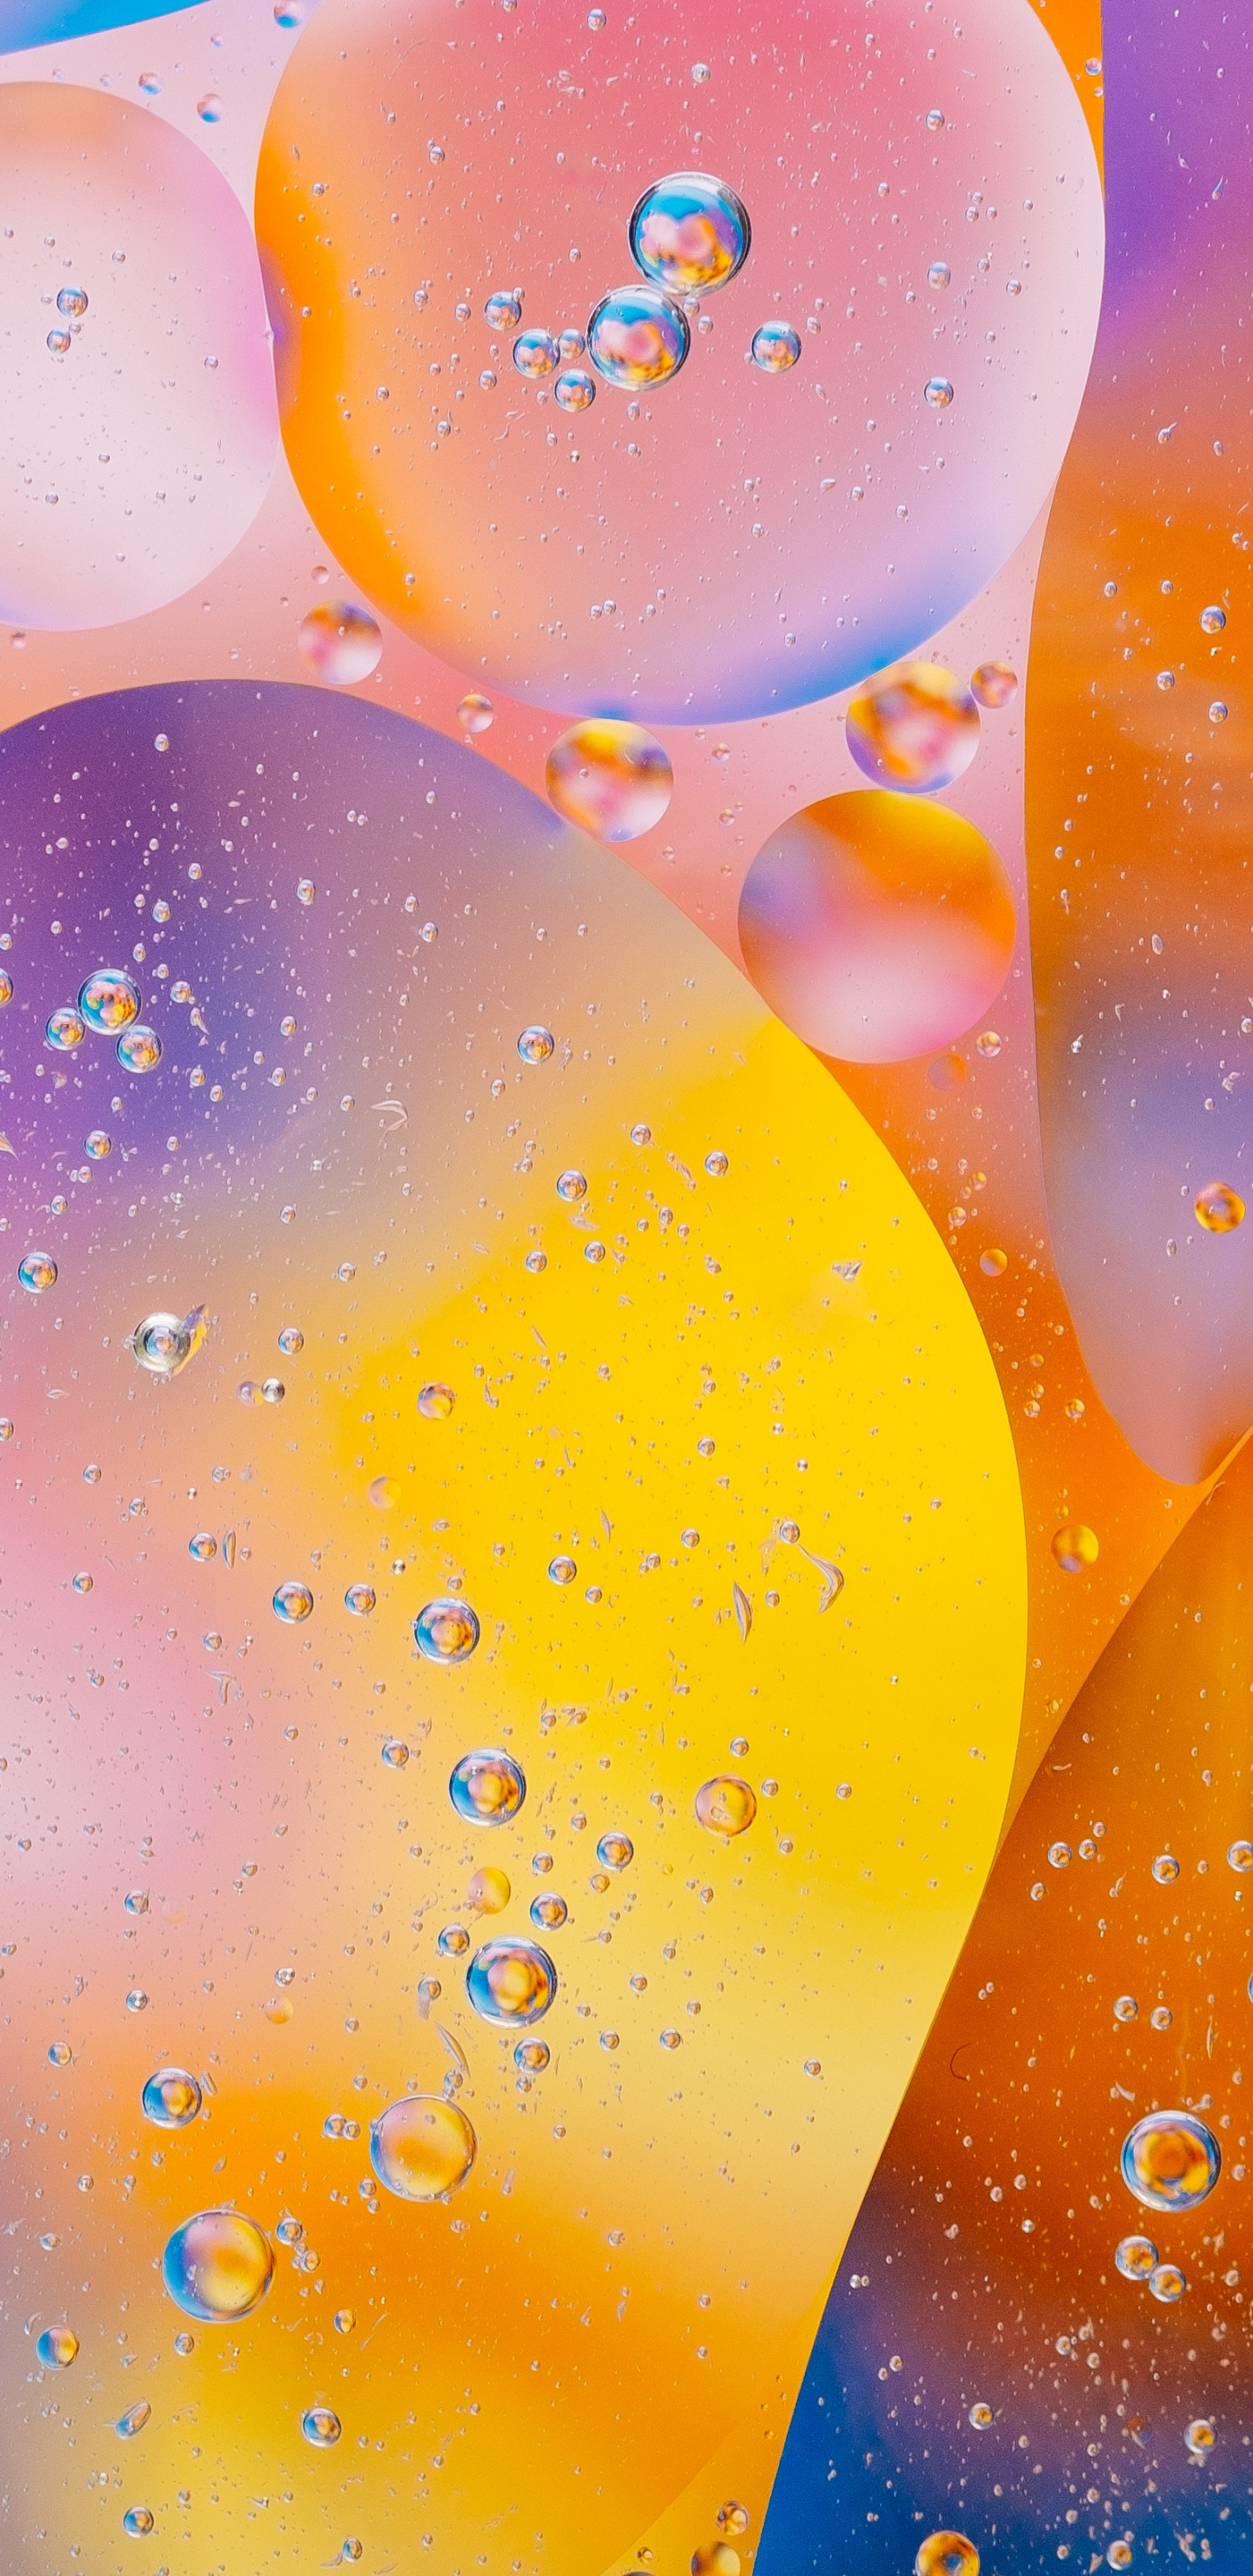 Colorful Water Bubbles Wallpaper For Iphone - HD Wallpaper